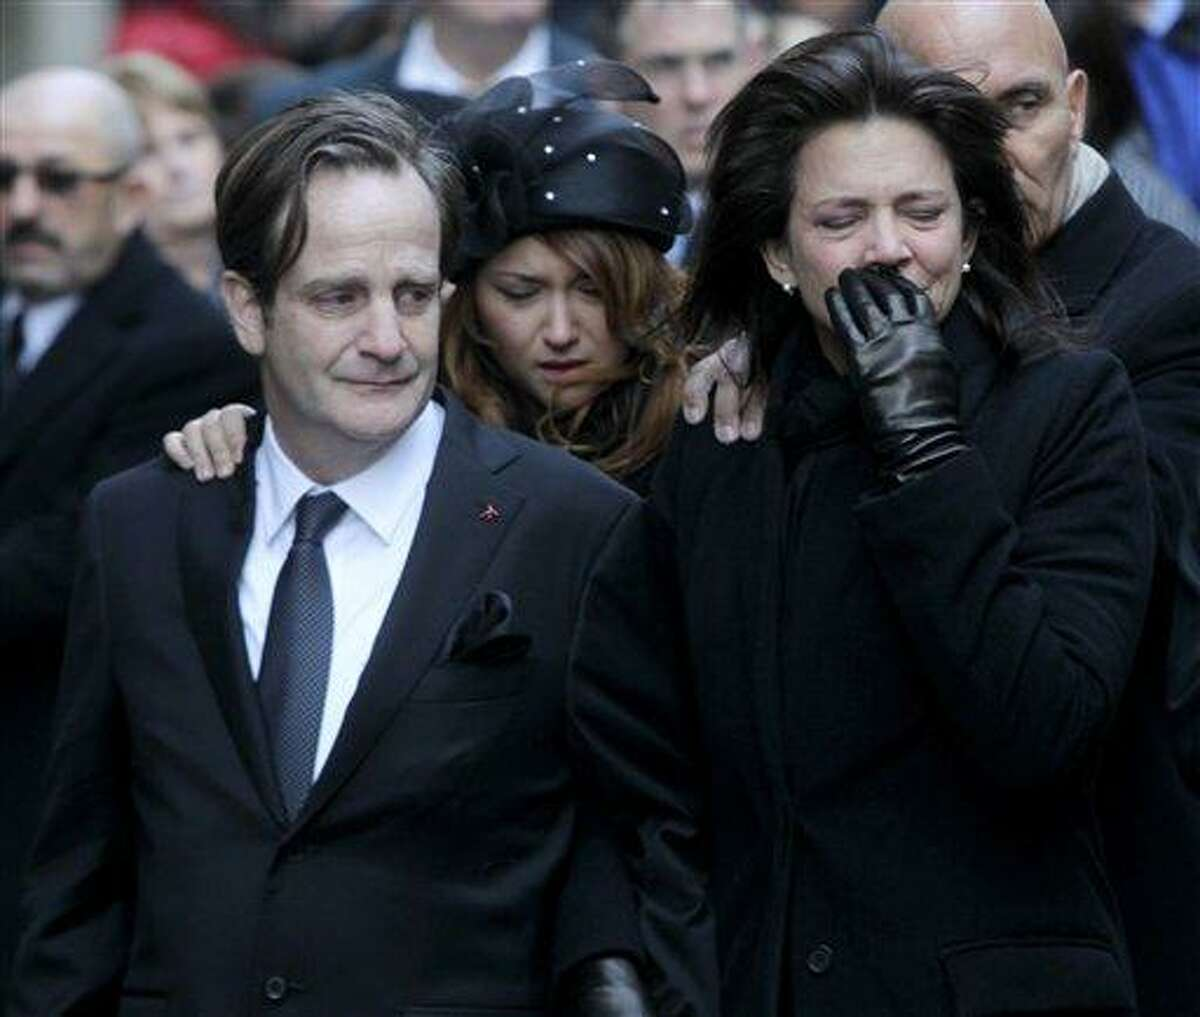 Matthew Badger, left, and Madonna Badger, the parents of three children that were killed in a fire, react as their caskets are carried into a church during the funeral in New York Thursday. Associated Press